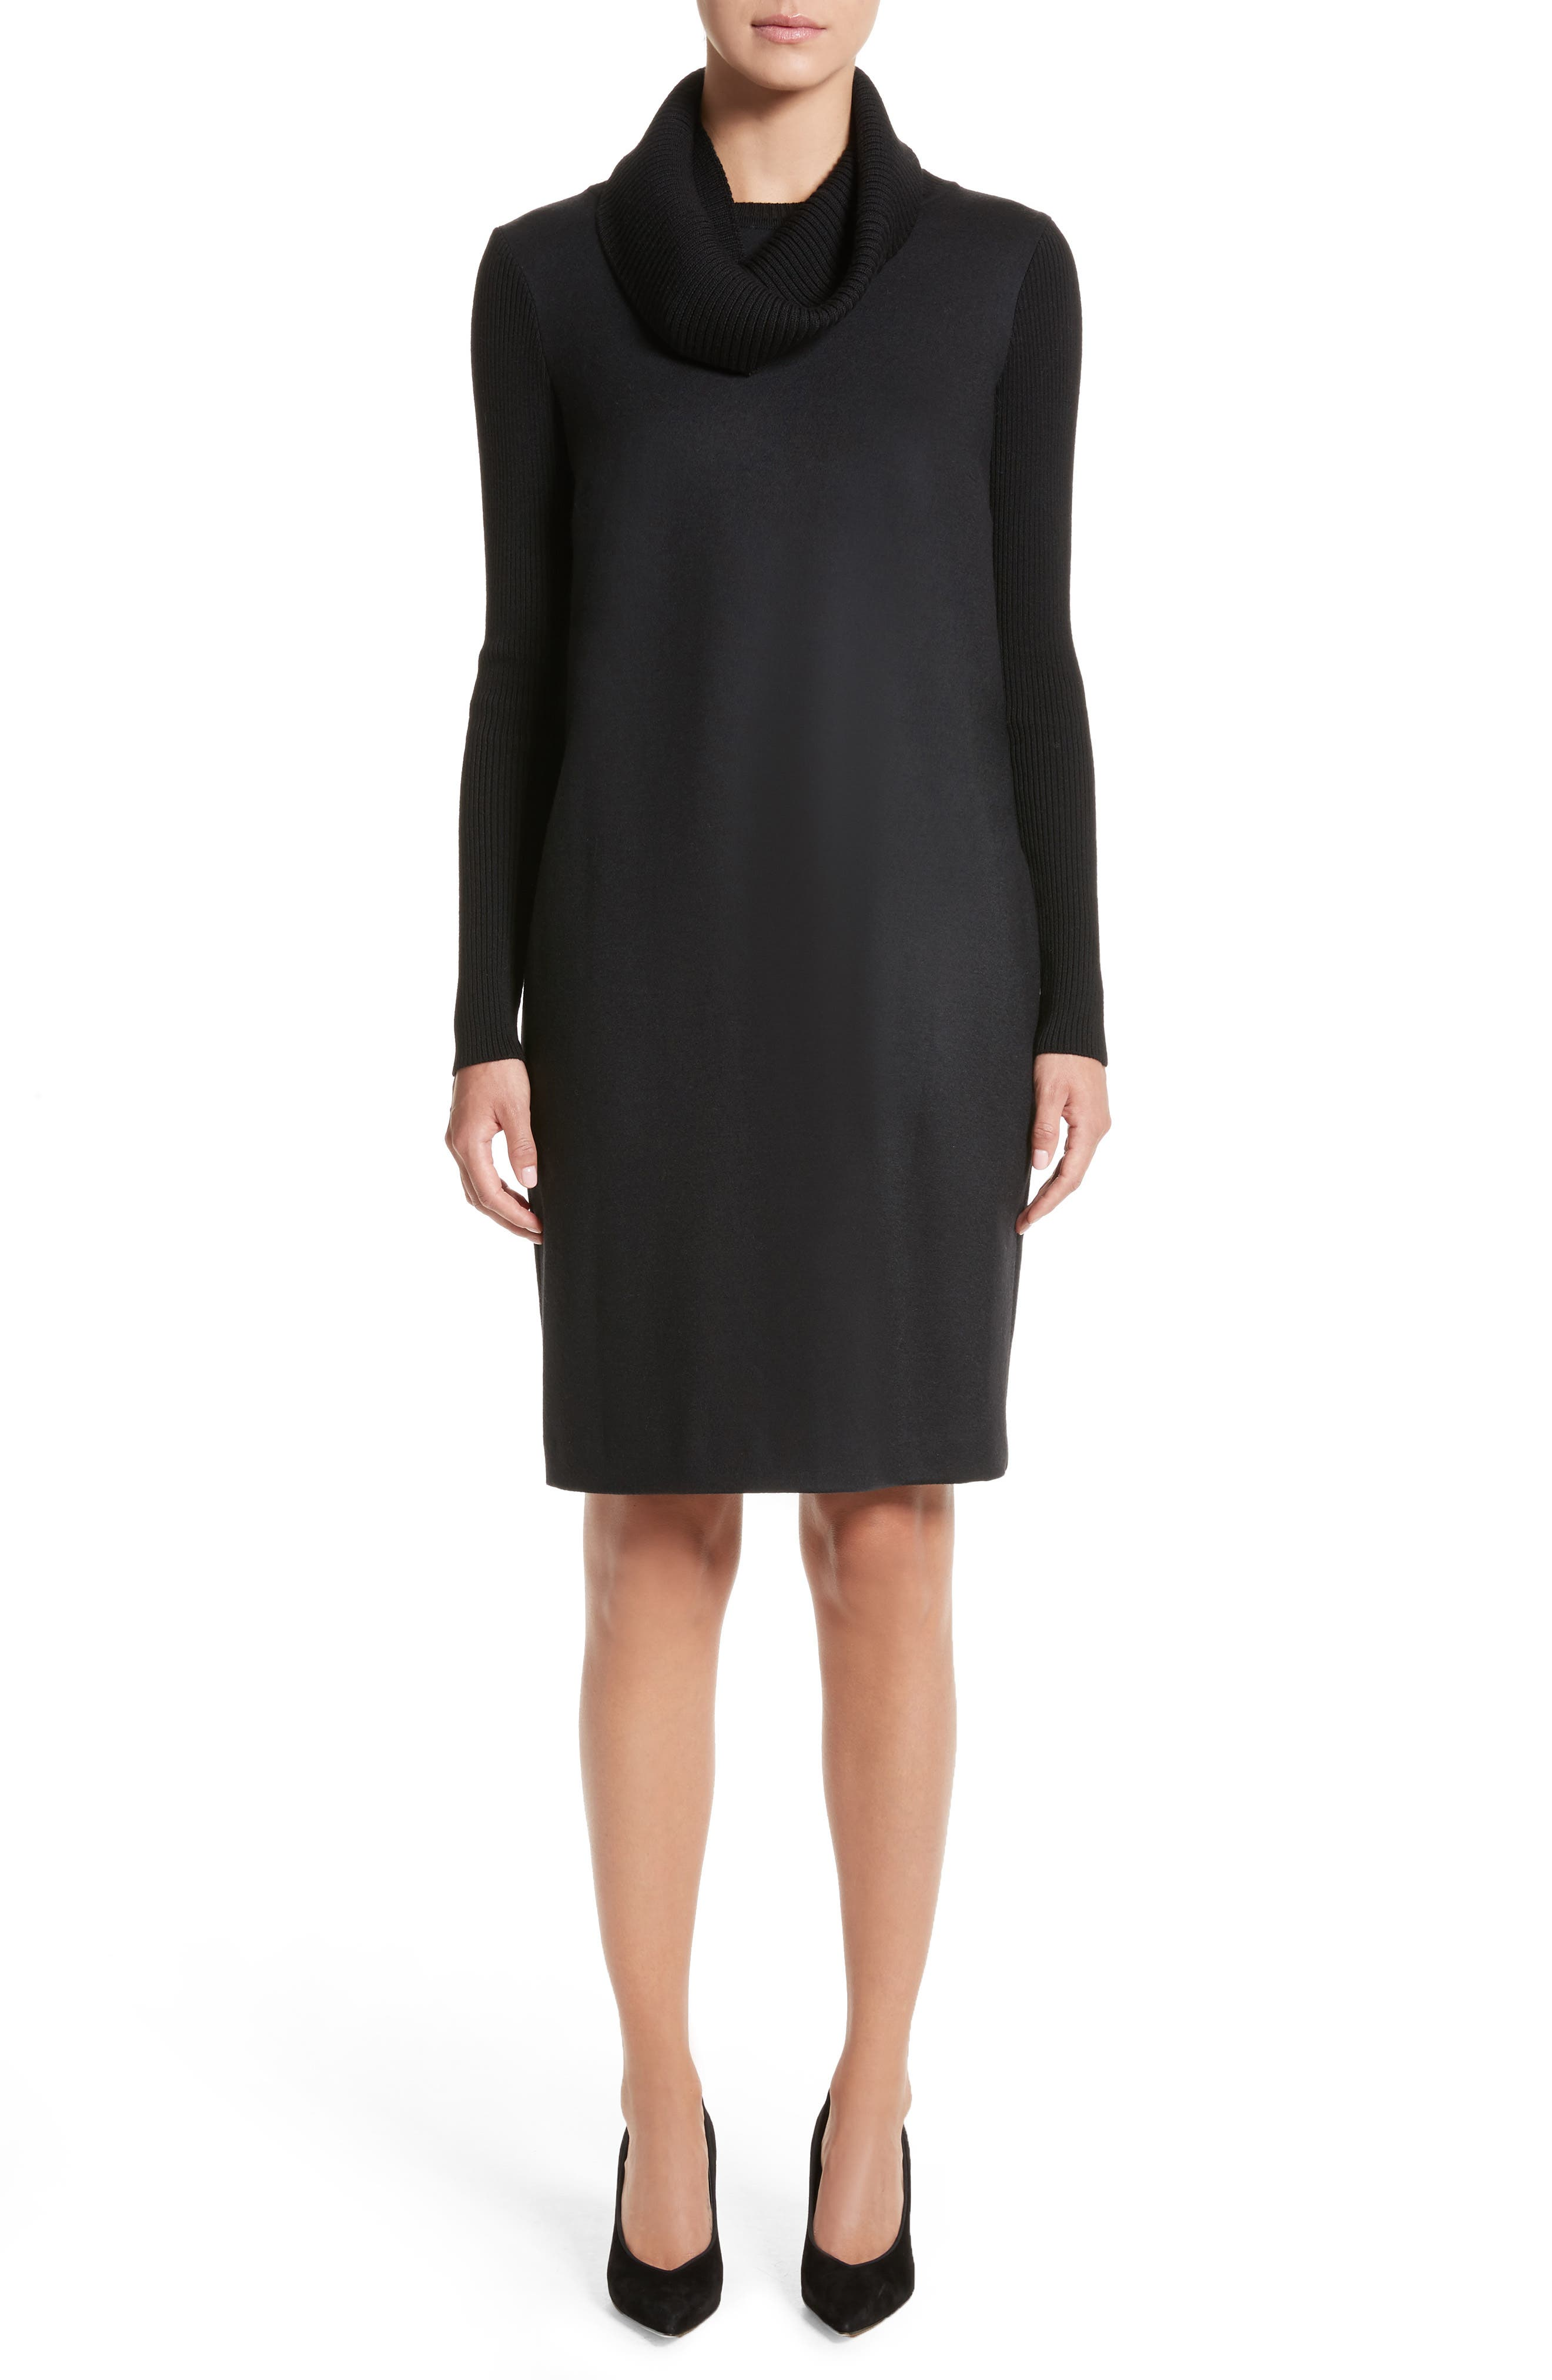 Cancan Wool Jersey Dress with Removable Knit Cowl,                         Main,                         color, Black